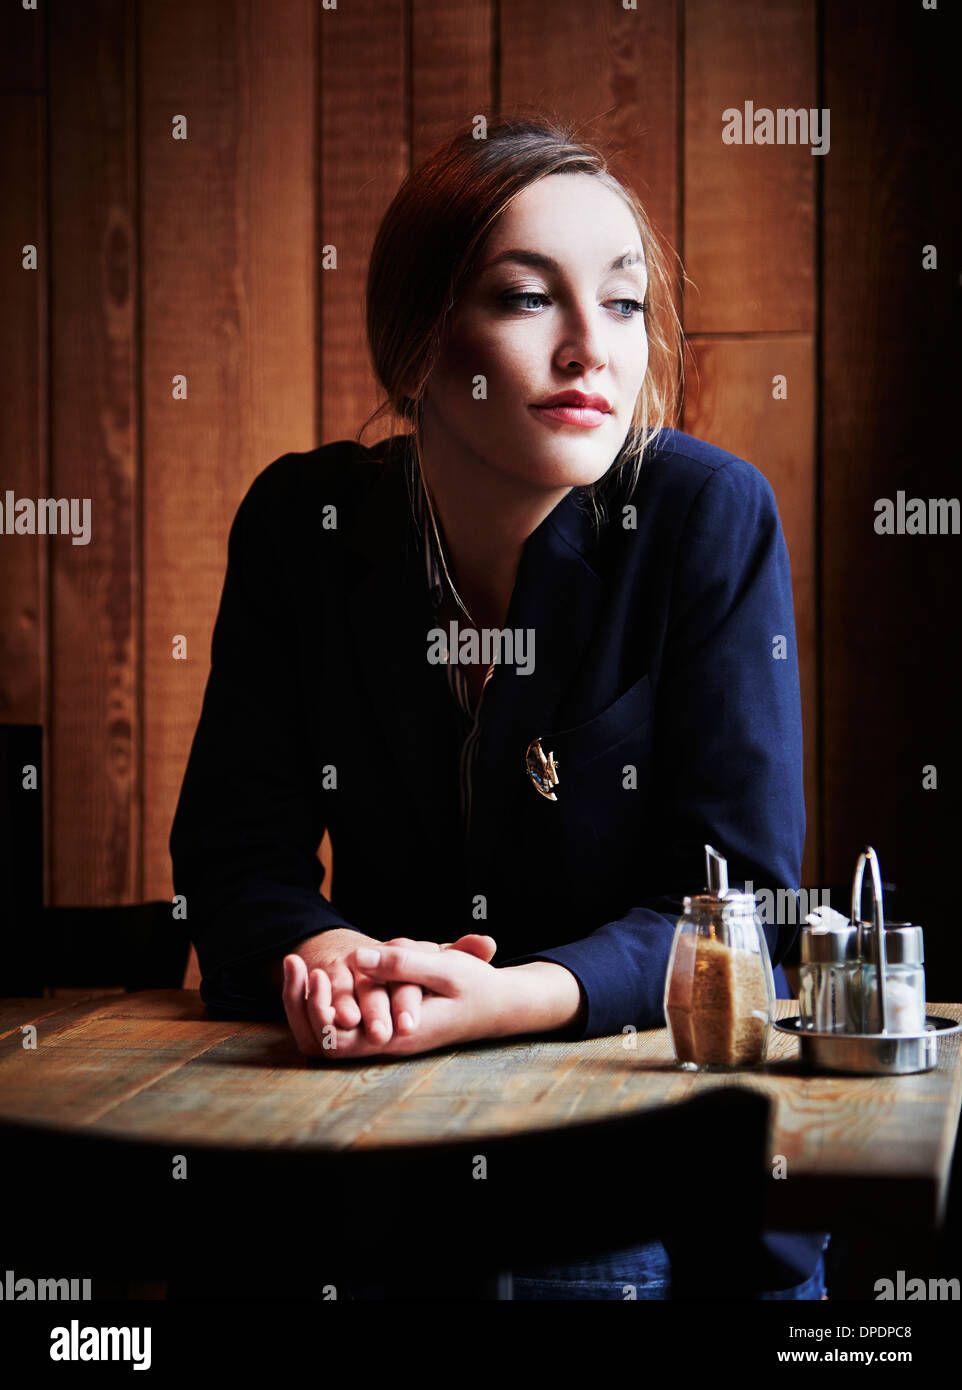 Young woman sitting in cafe with hands clasped - Stock Image